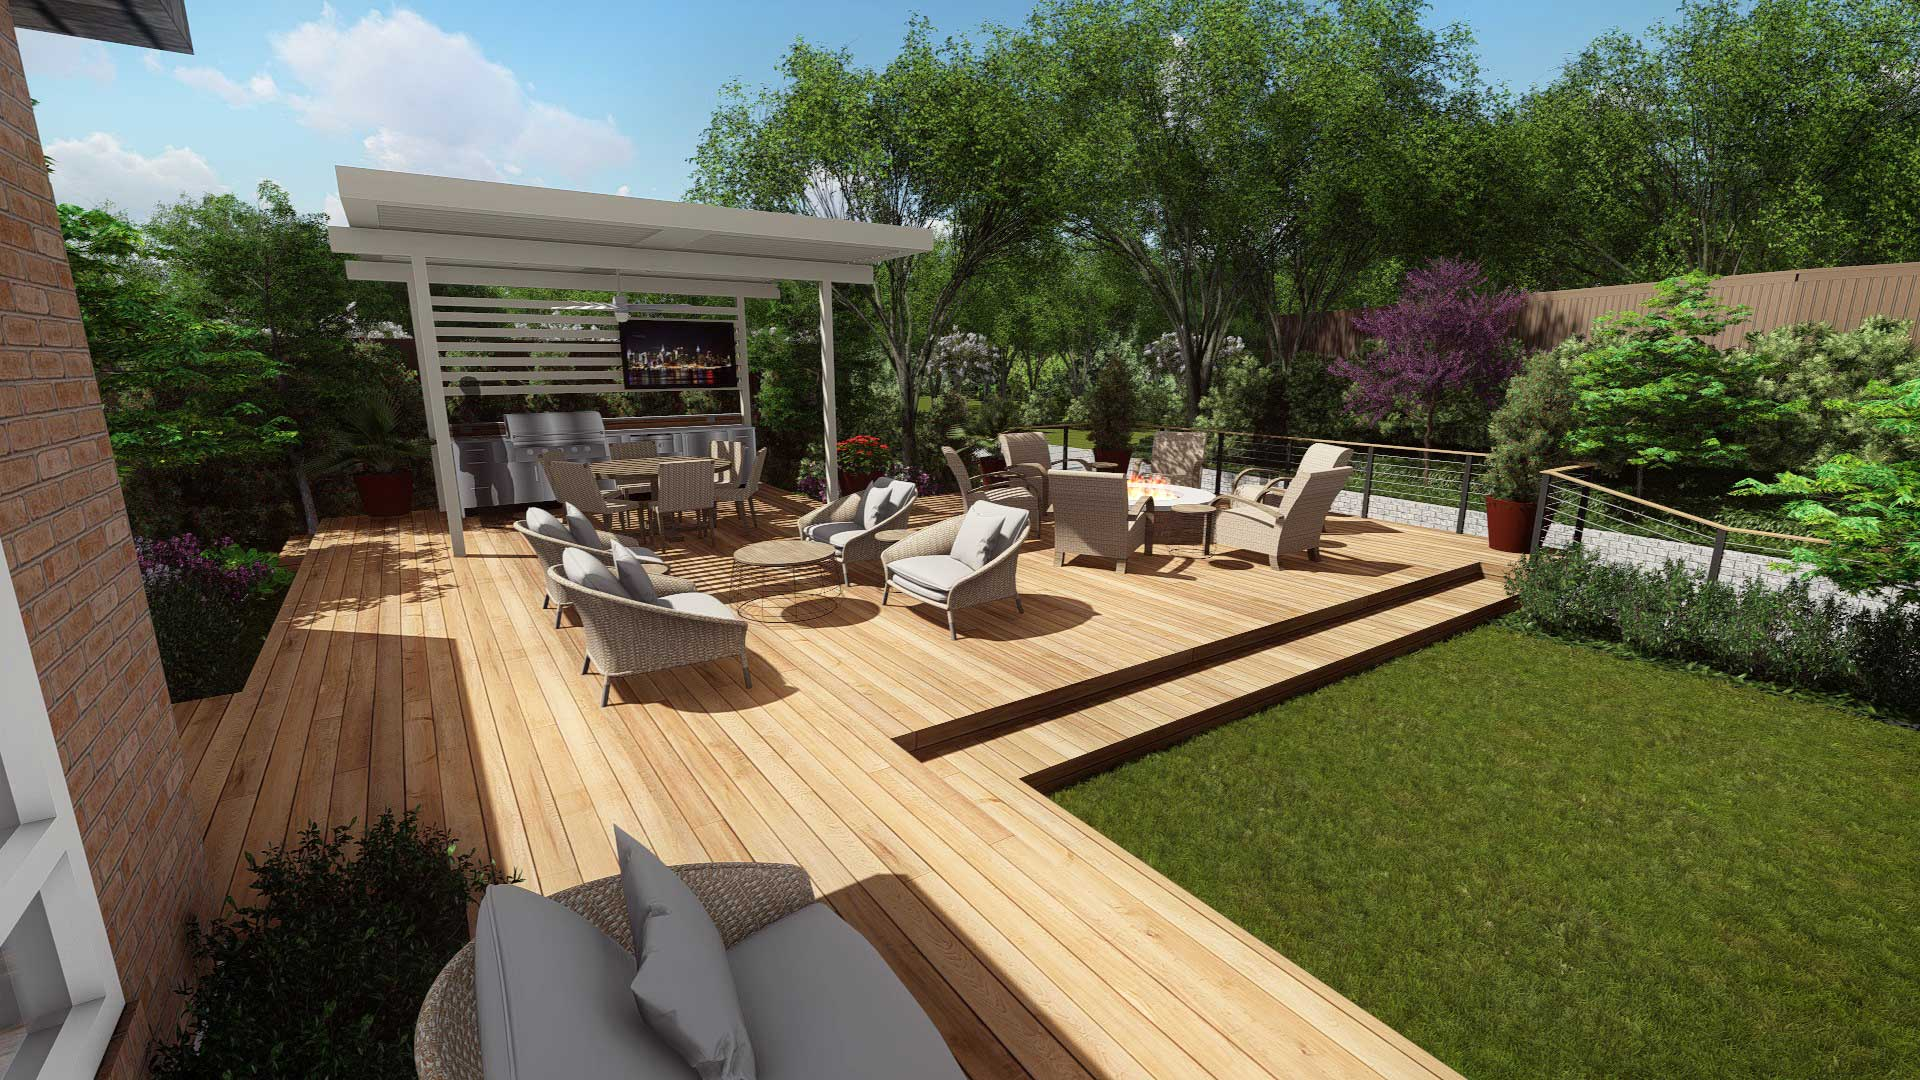 NEW DECK & OUTDOOR LIVING